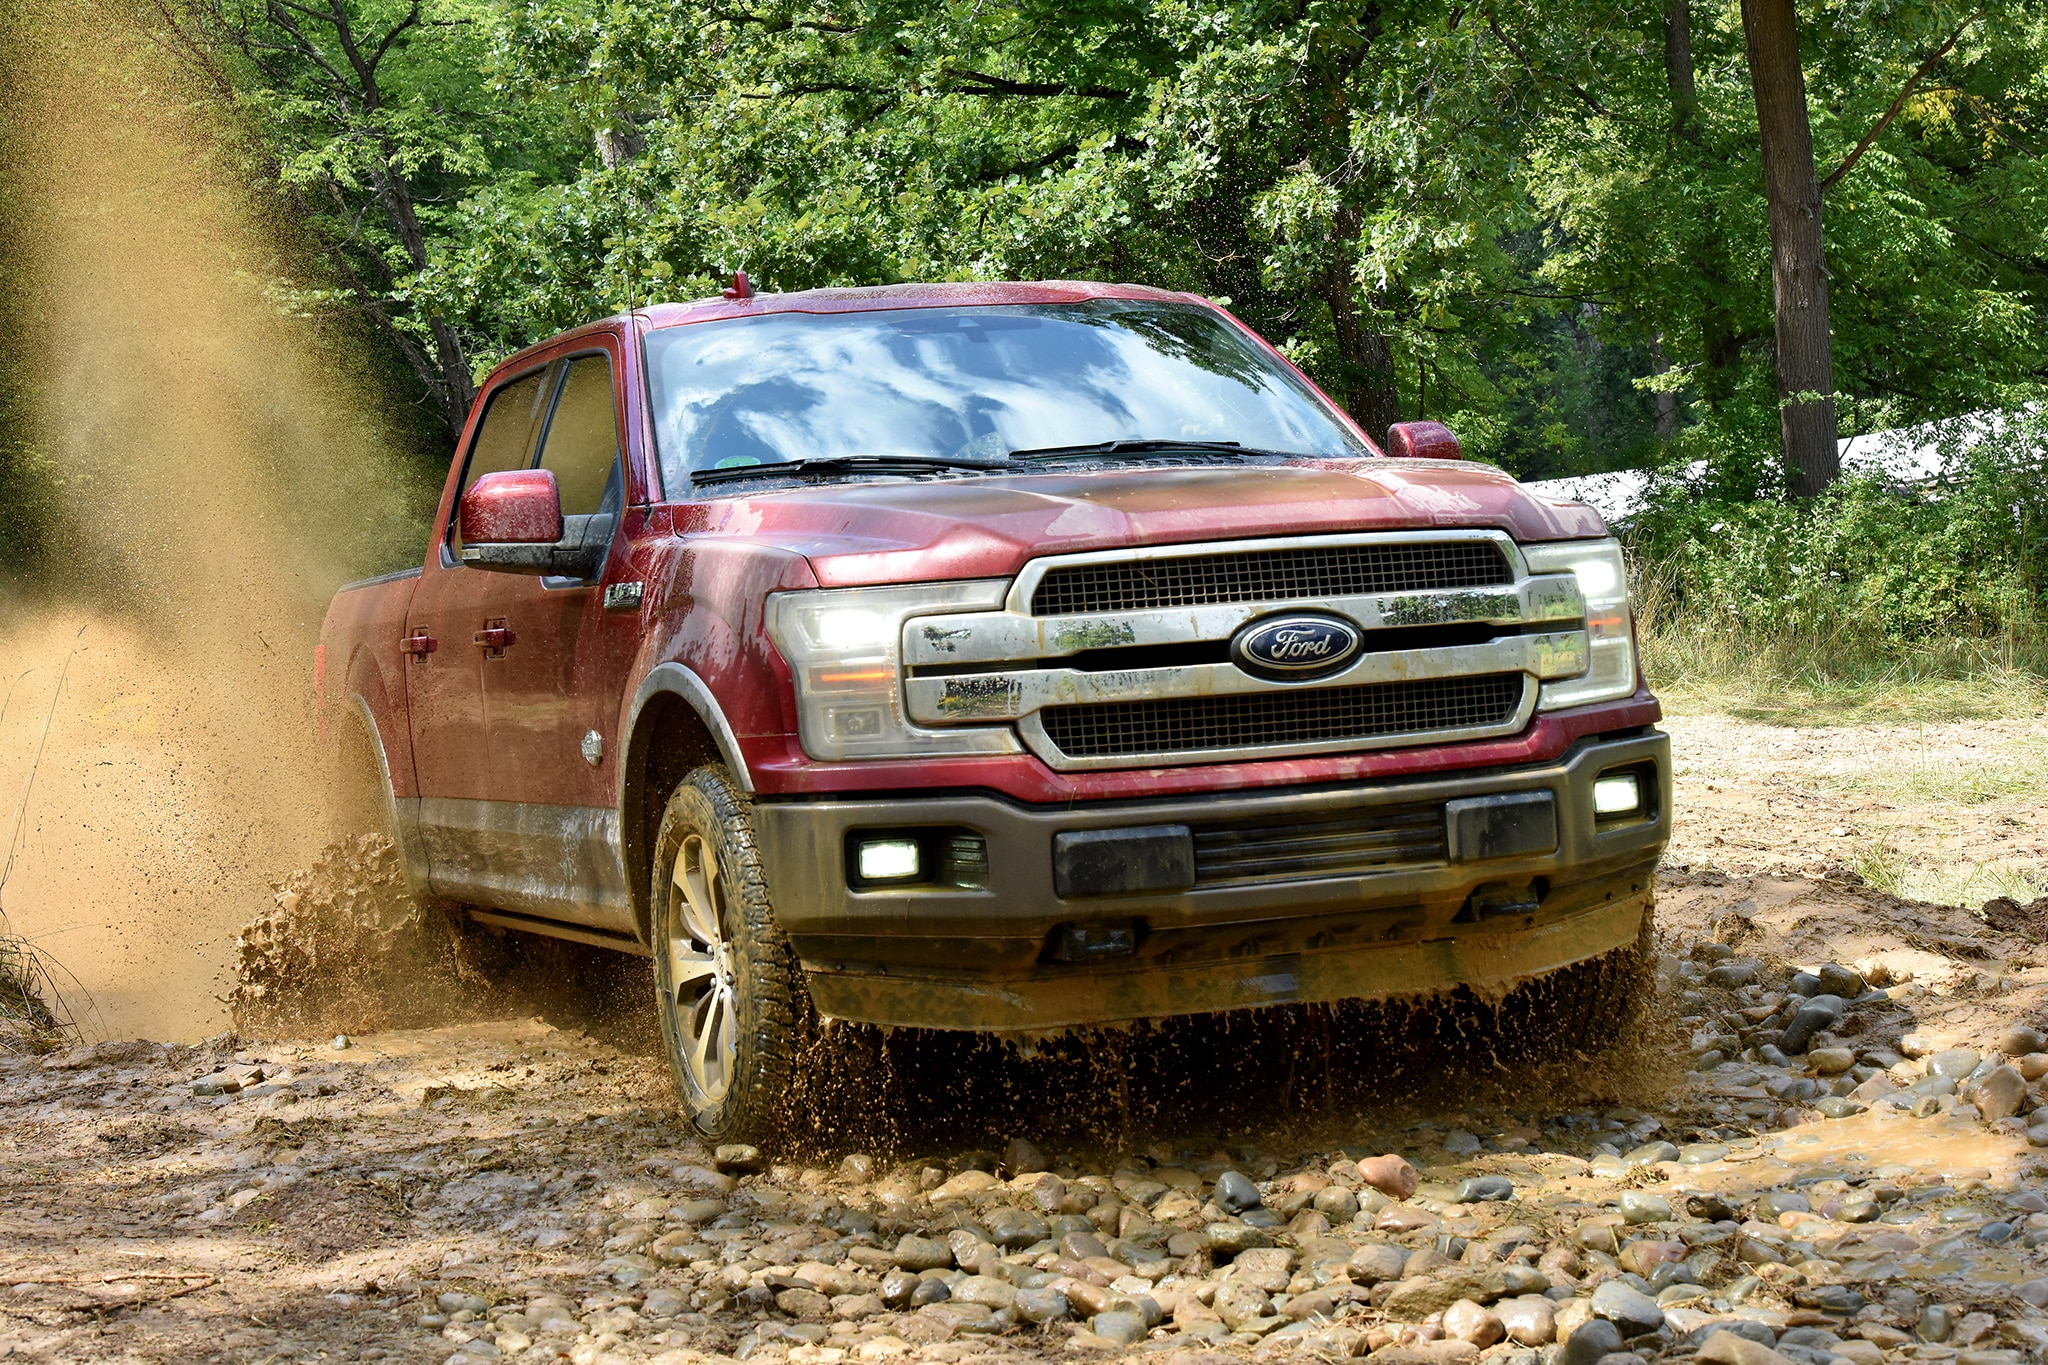 Ford dealership builds f 150 lightning that fomoco won t for Newspaper wallpaper for sale